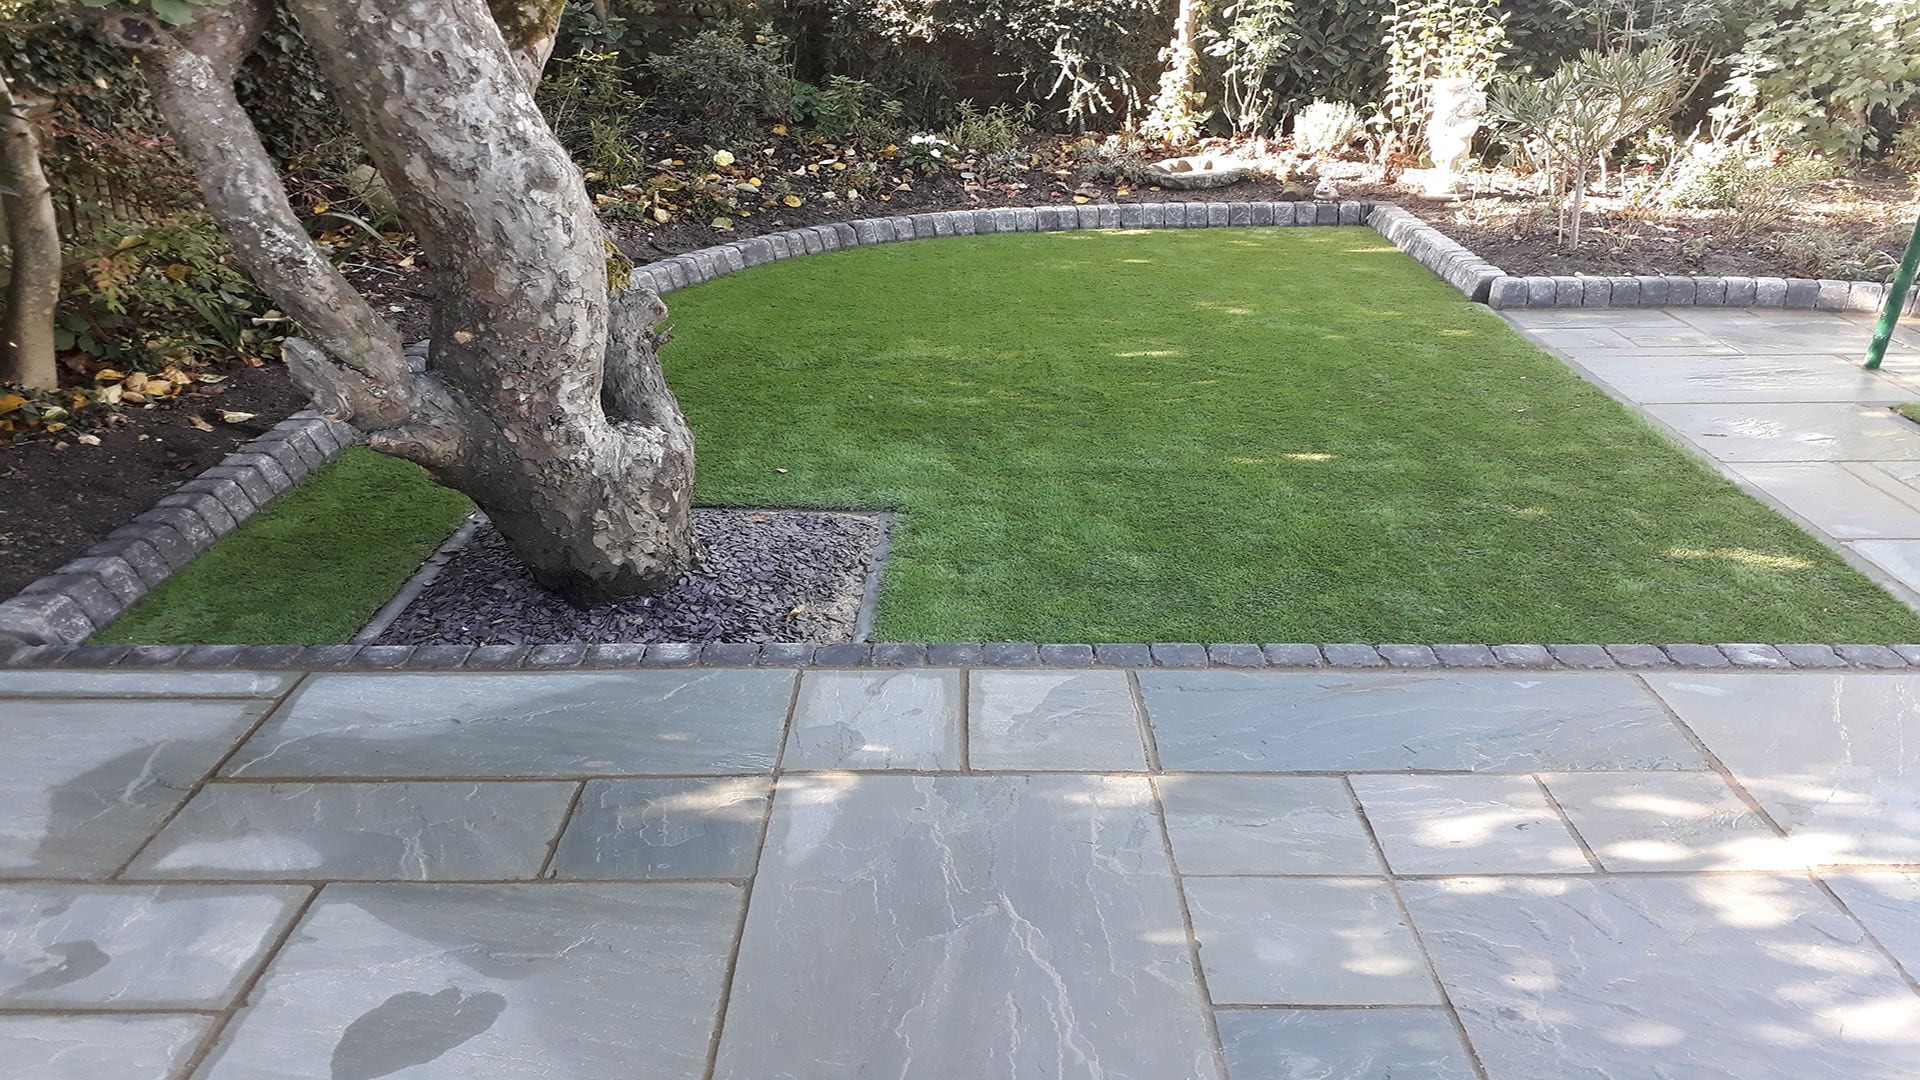 After Photo of the New Patio, Path and Artificial Grass